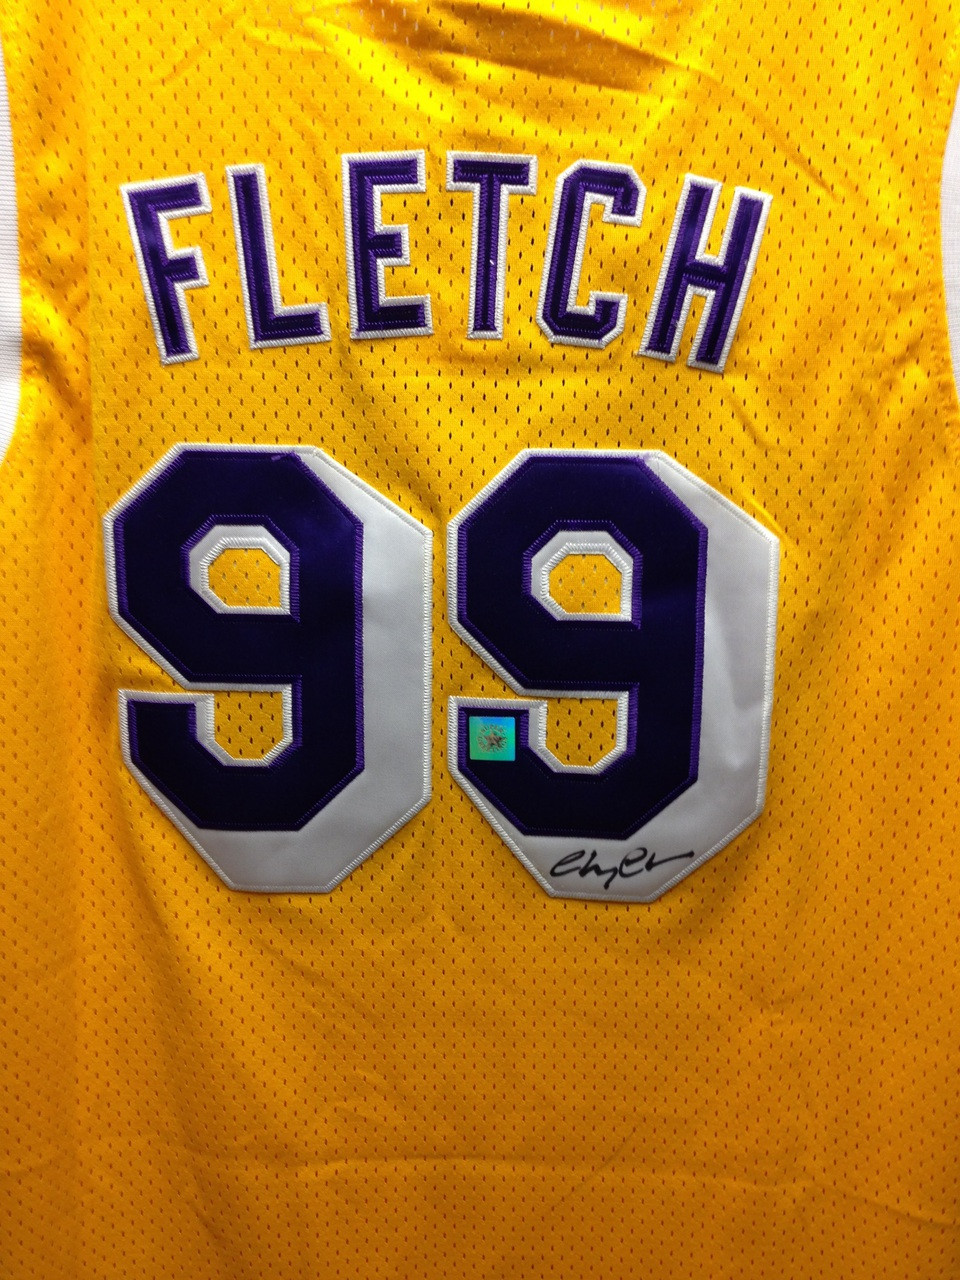 7045a1fcc Chevy Chase Signed NBA Los Angeles Lakers  99 Fletch Basketball Jersey